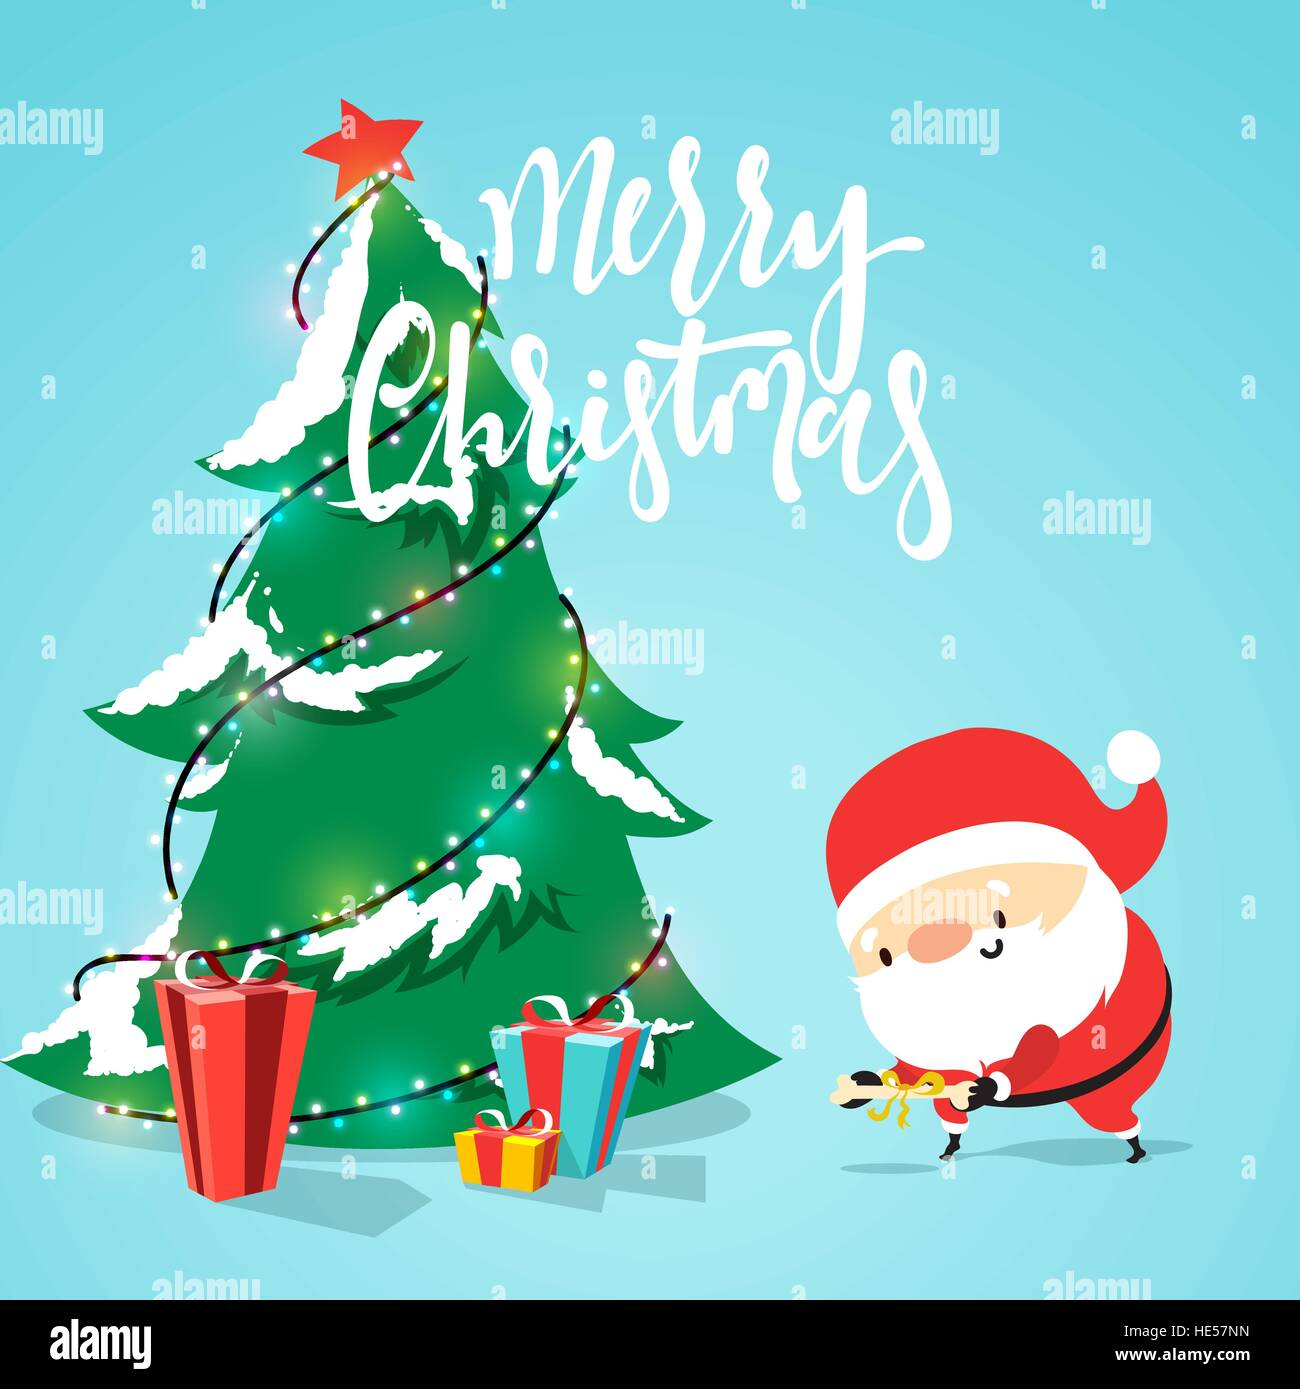 Santa Claus Cartoon Character Puts Presents Under The Christmas Stock Vector Image Art Alamy Polish your personal project or design with these cartoon tree transparent png images, make it even more personalized and more attractive. https www alamy com stock photo santa claus cartoon character puts presents under the christmas tree 129193617 html